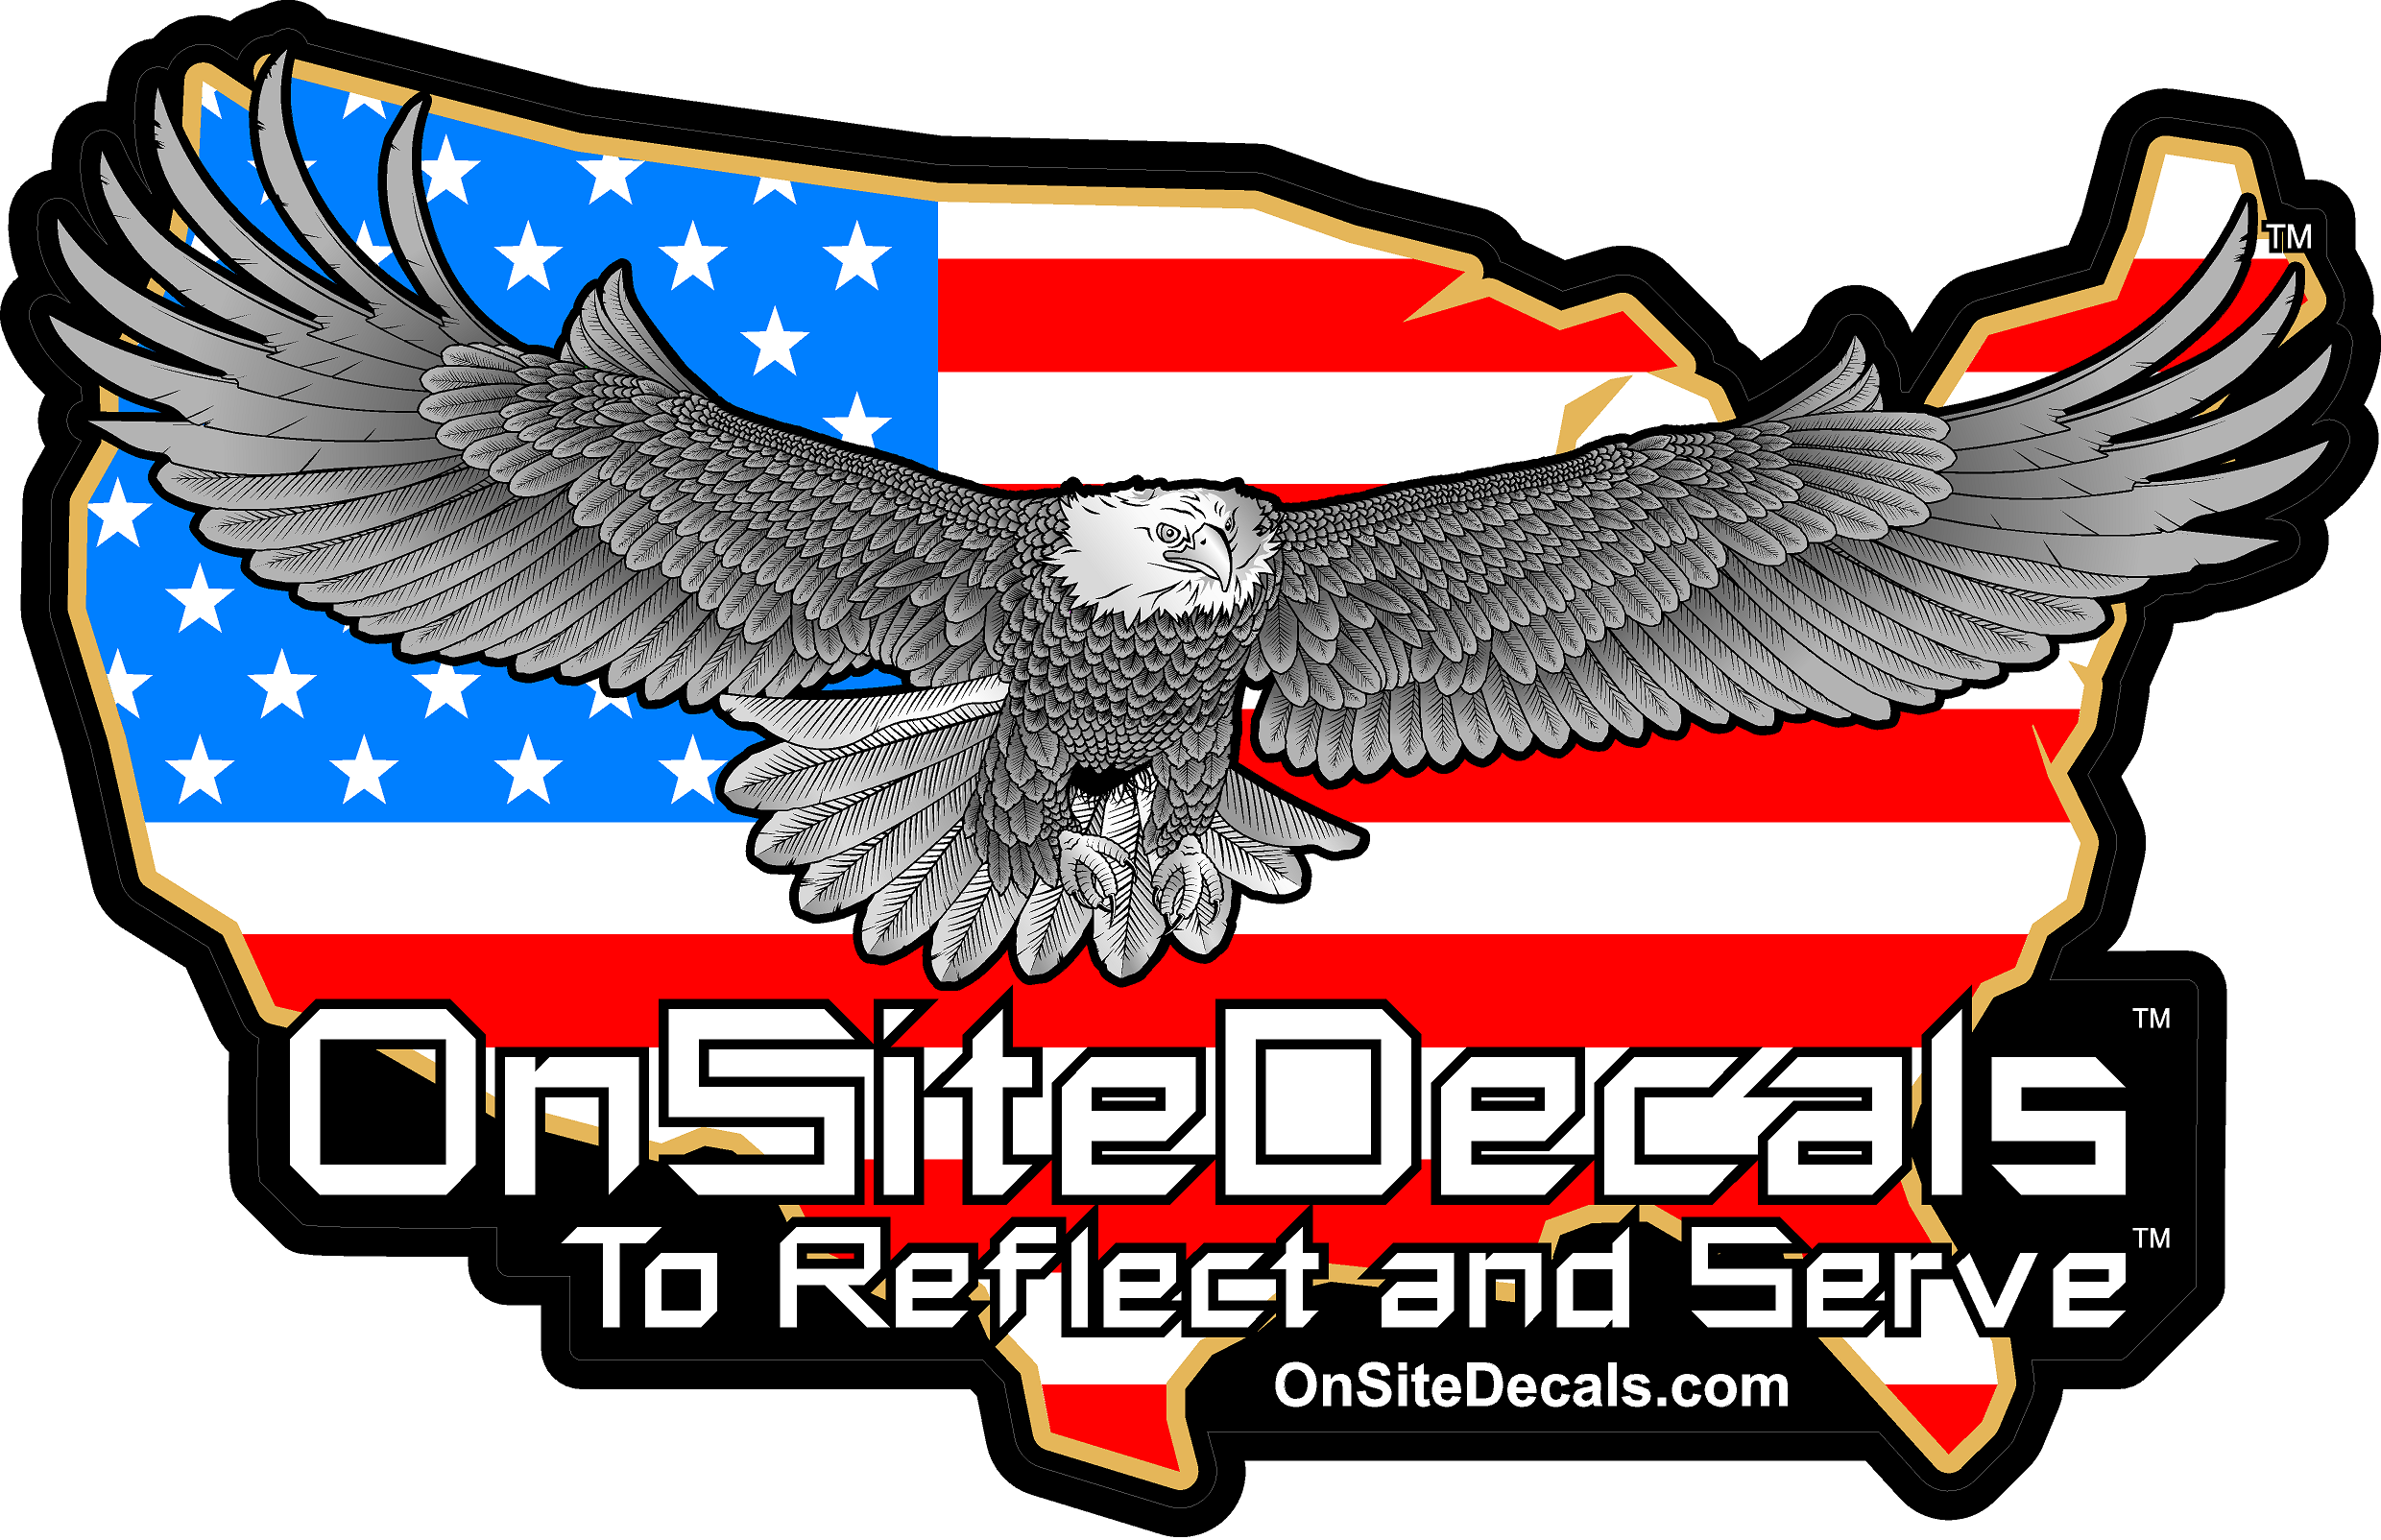 osd-ecommerce-gift-decal.png